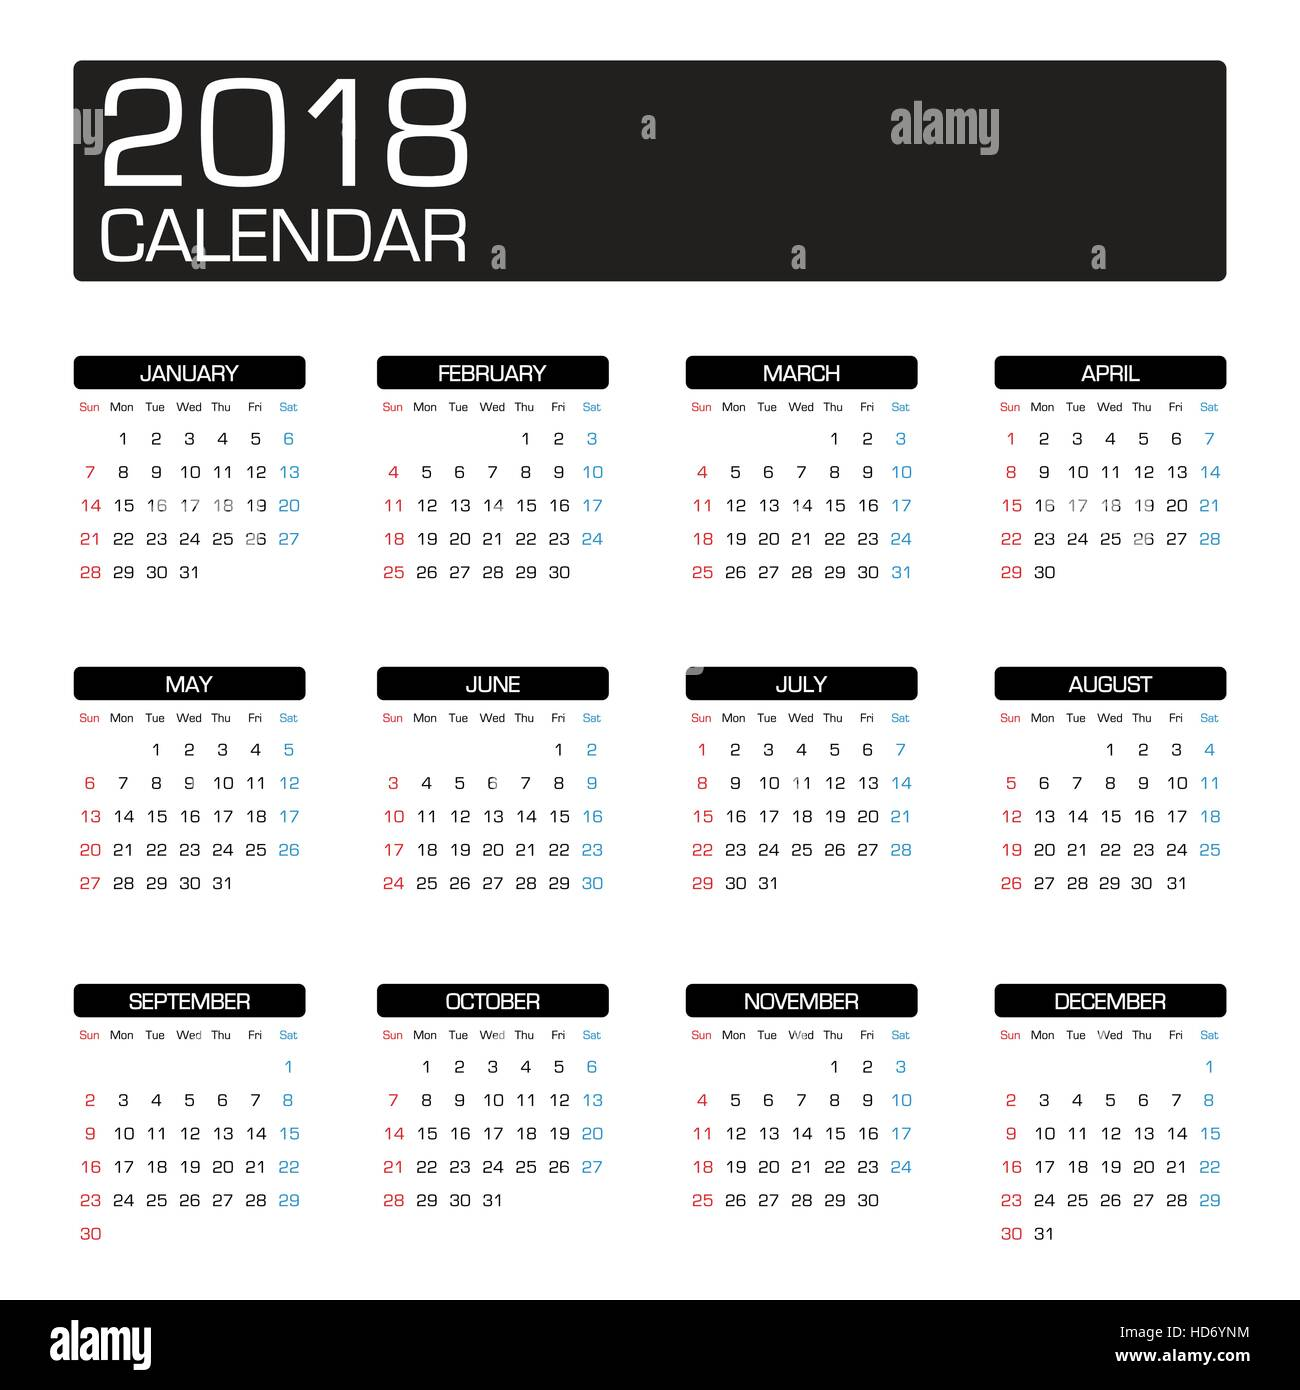 2018 year calendar template stock vector